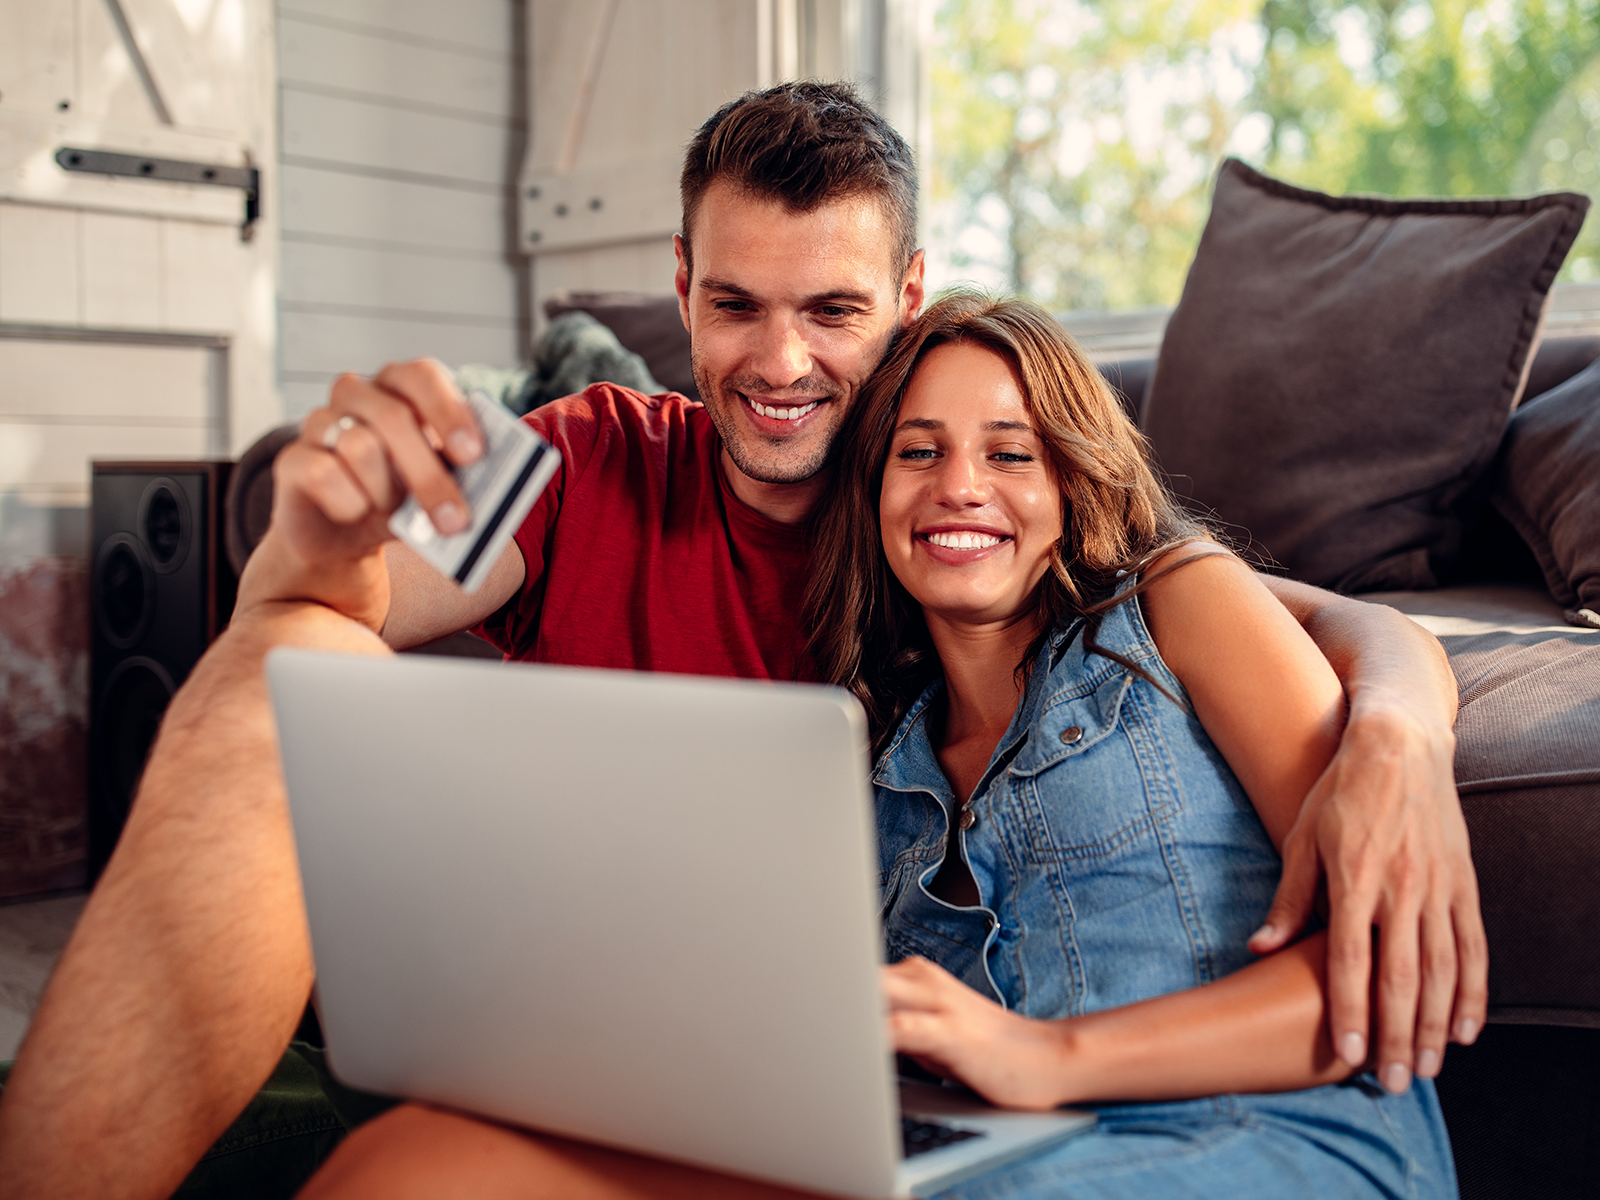 couple sitting together looking at laptop happily